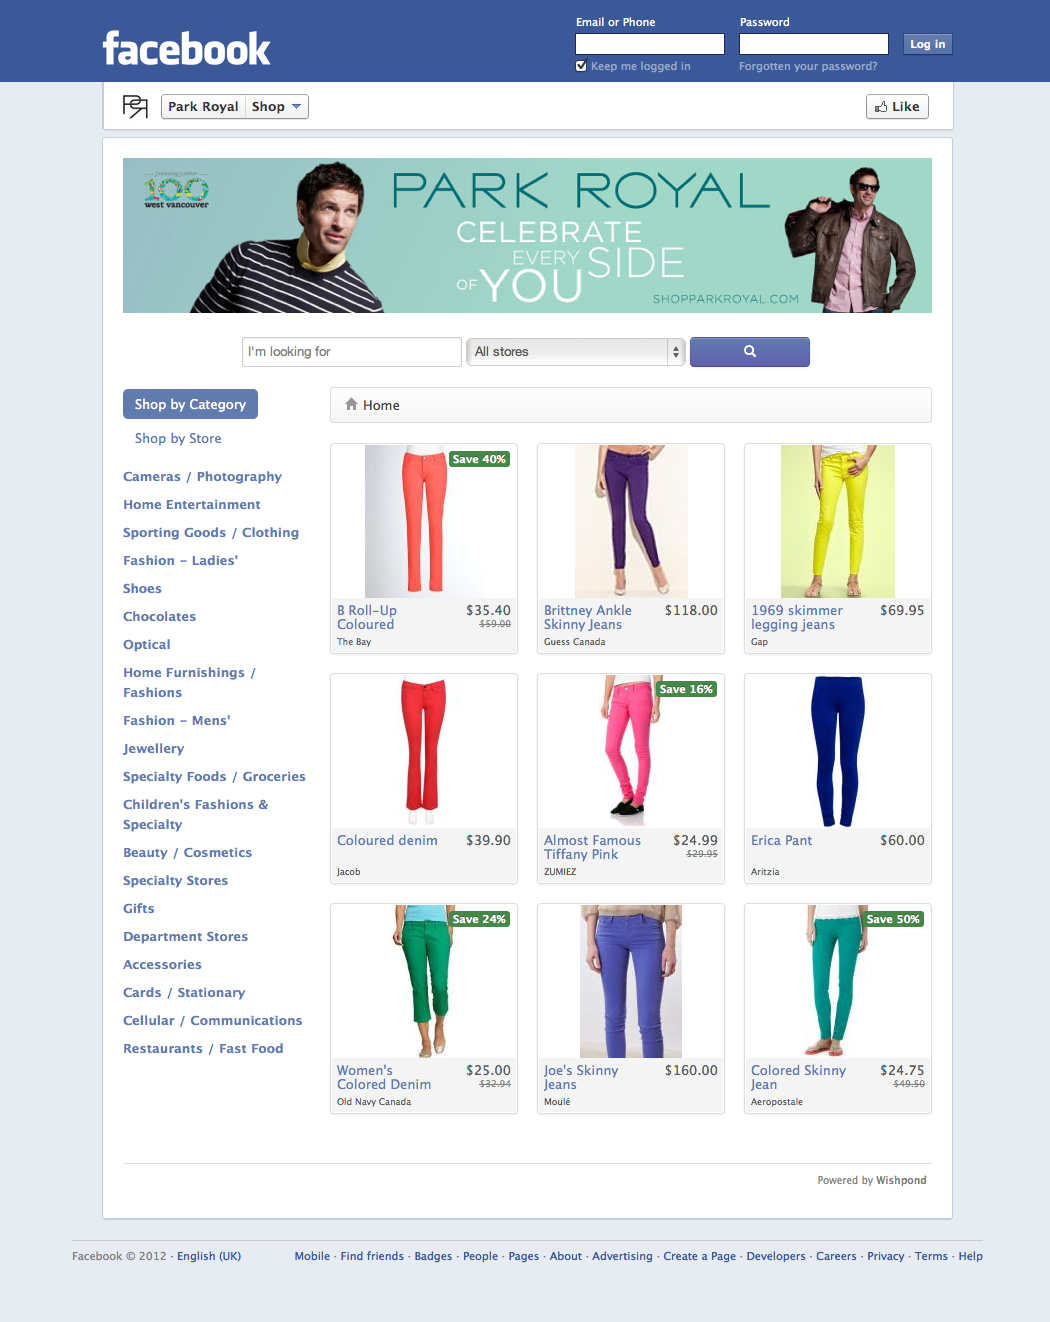 Park Royal experience in Facebook, powered by Wishpond Mall360